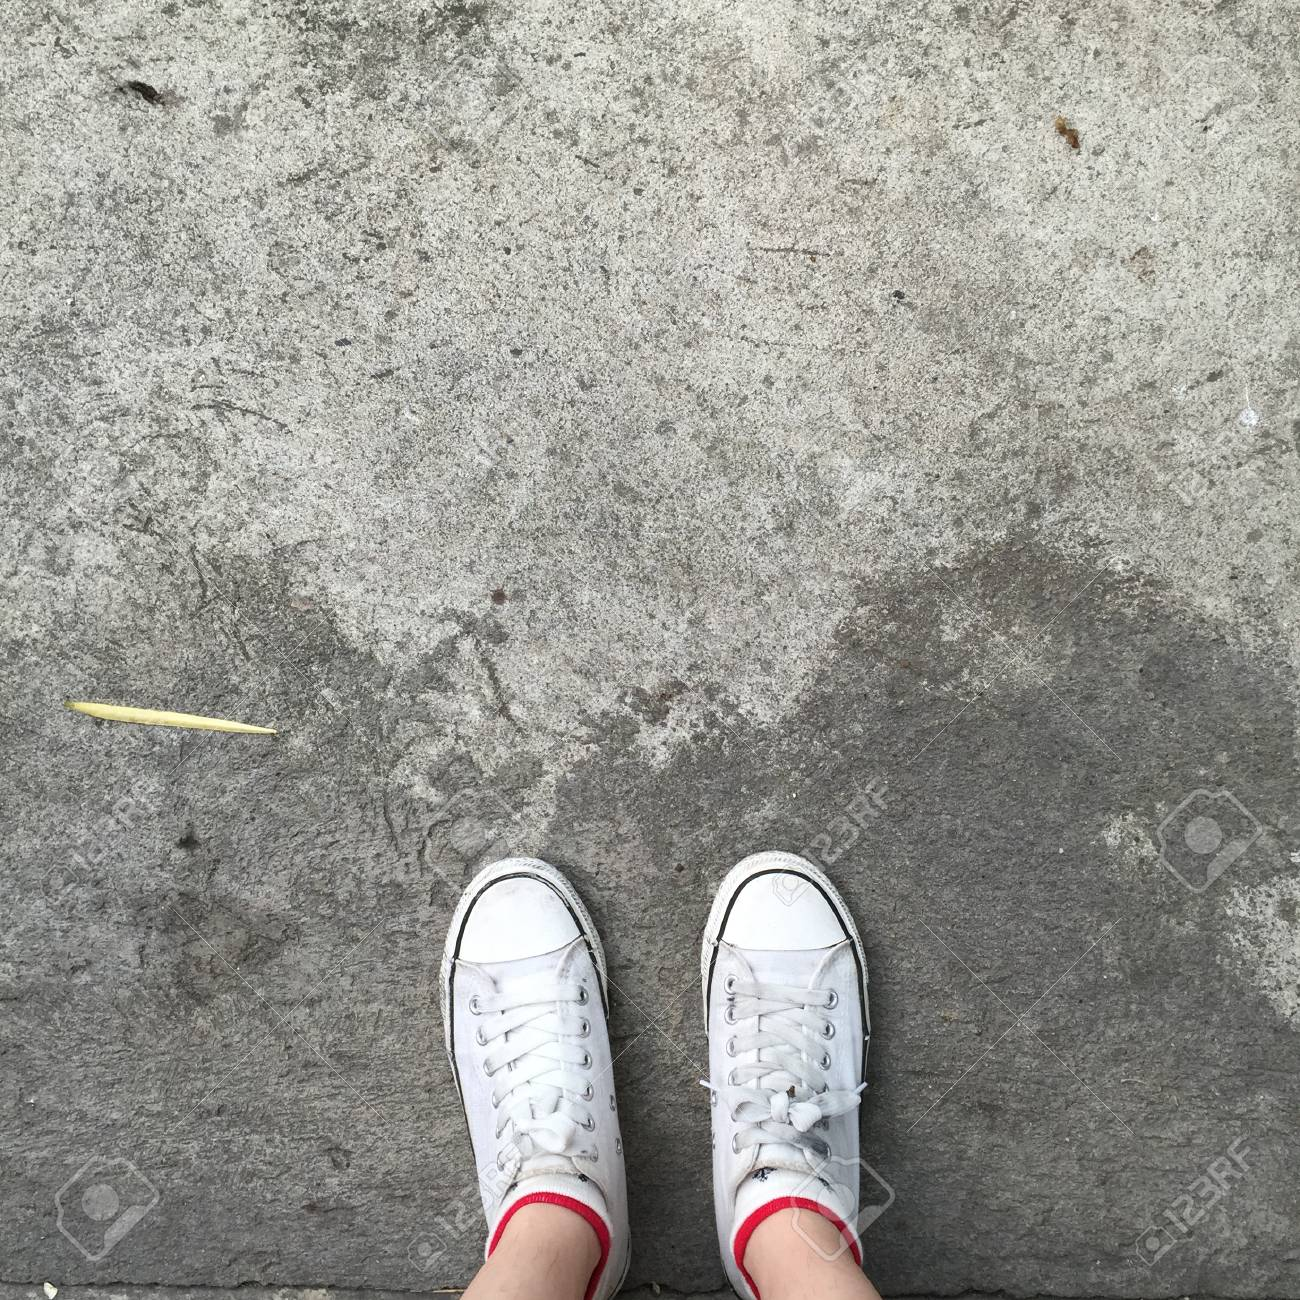 shoes for walking on concrete